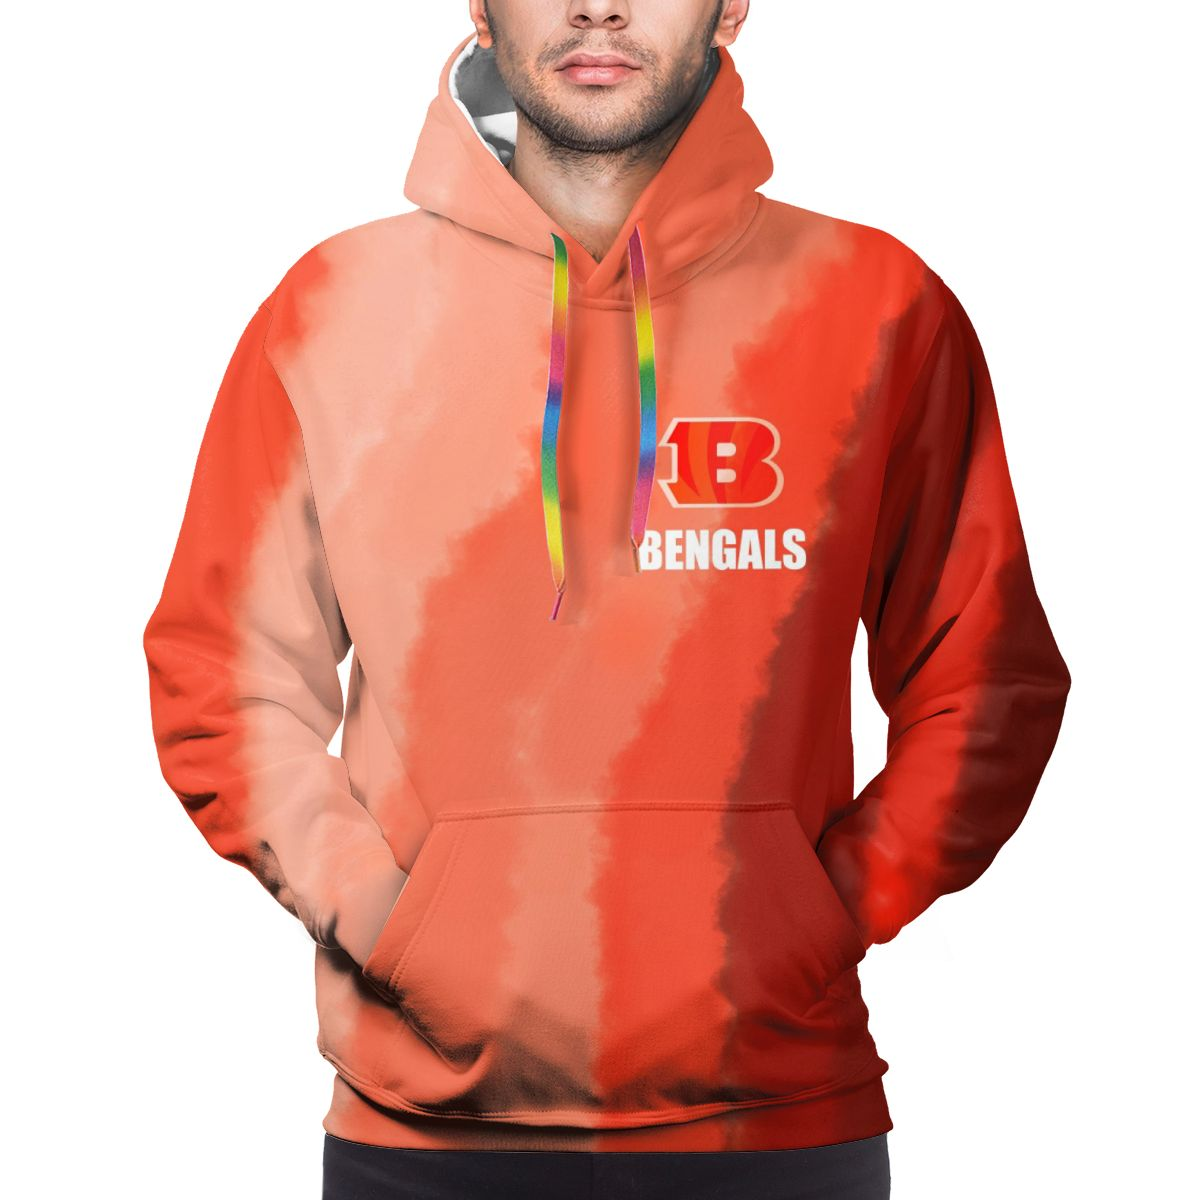 BENGALS Logo Print Hoodies For Men Pullover Sweatshirt